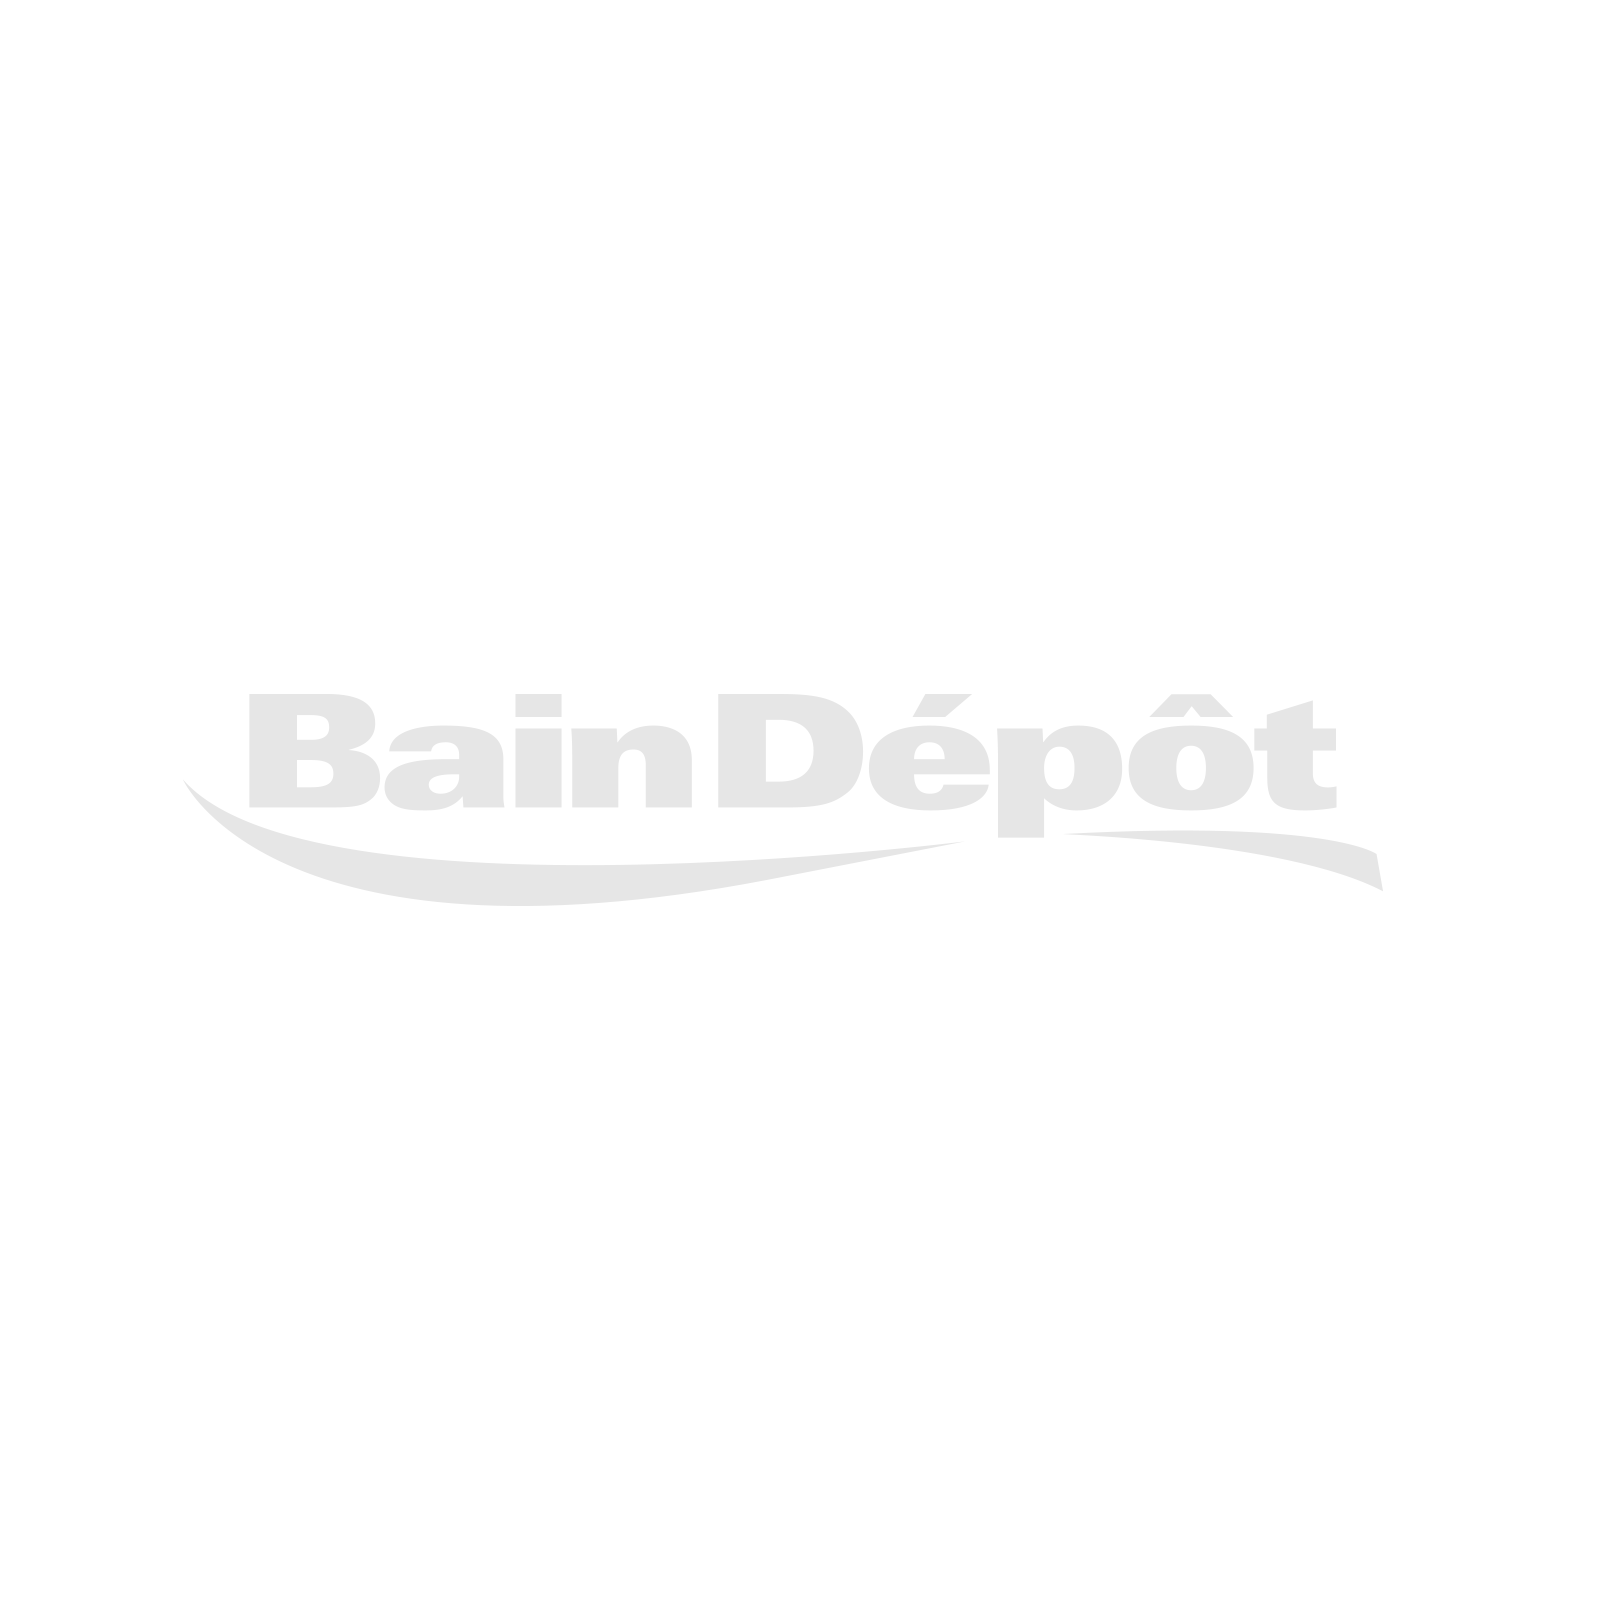 Lumawarm beige heated toilet seat with nightlight for elongated bowl